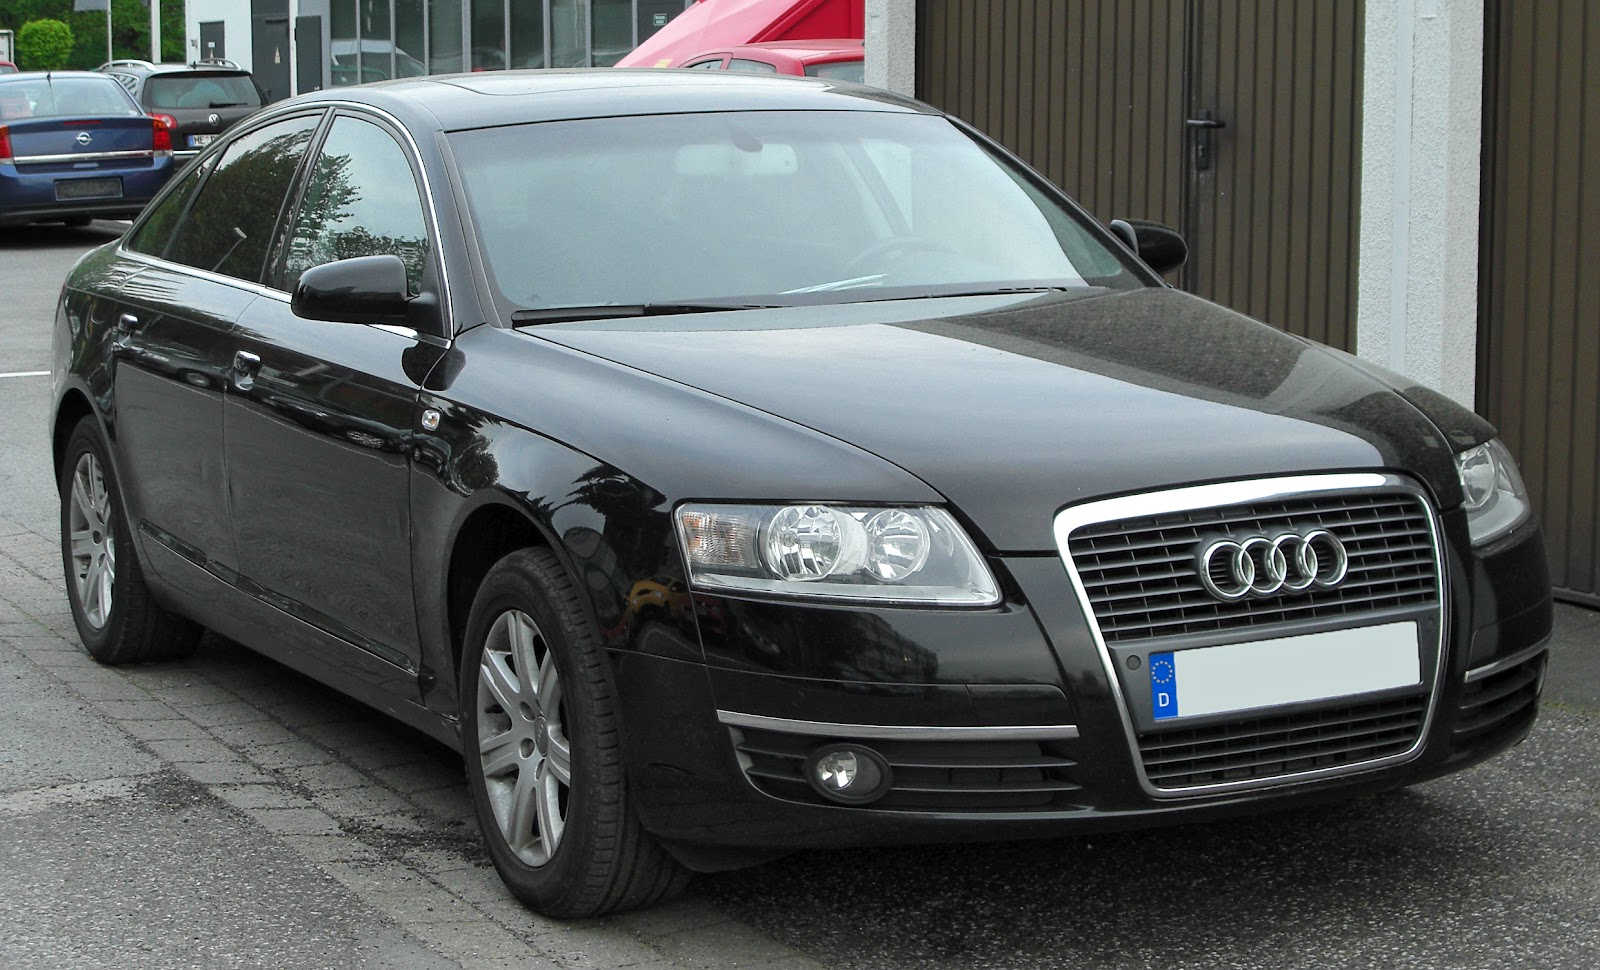 2012 Audi A6 Diesel 2 0 Tdi Preview